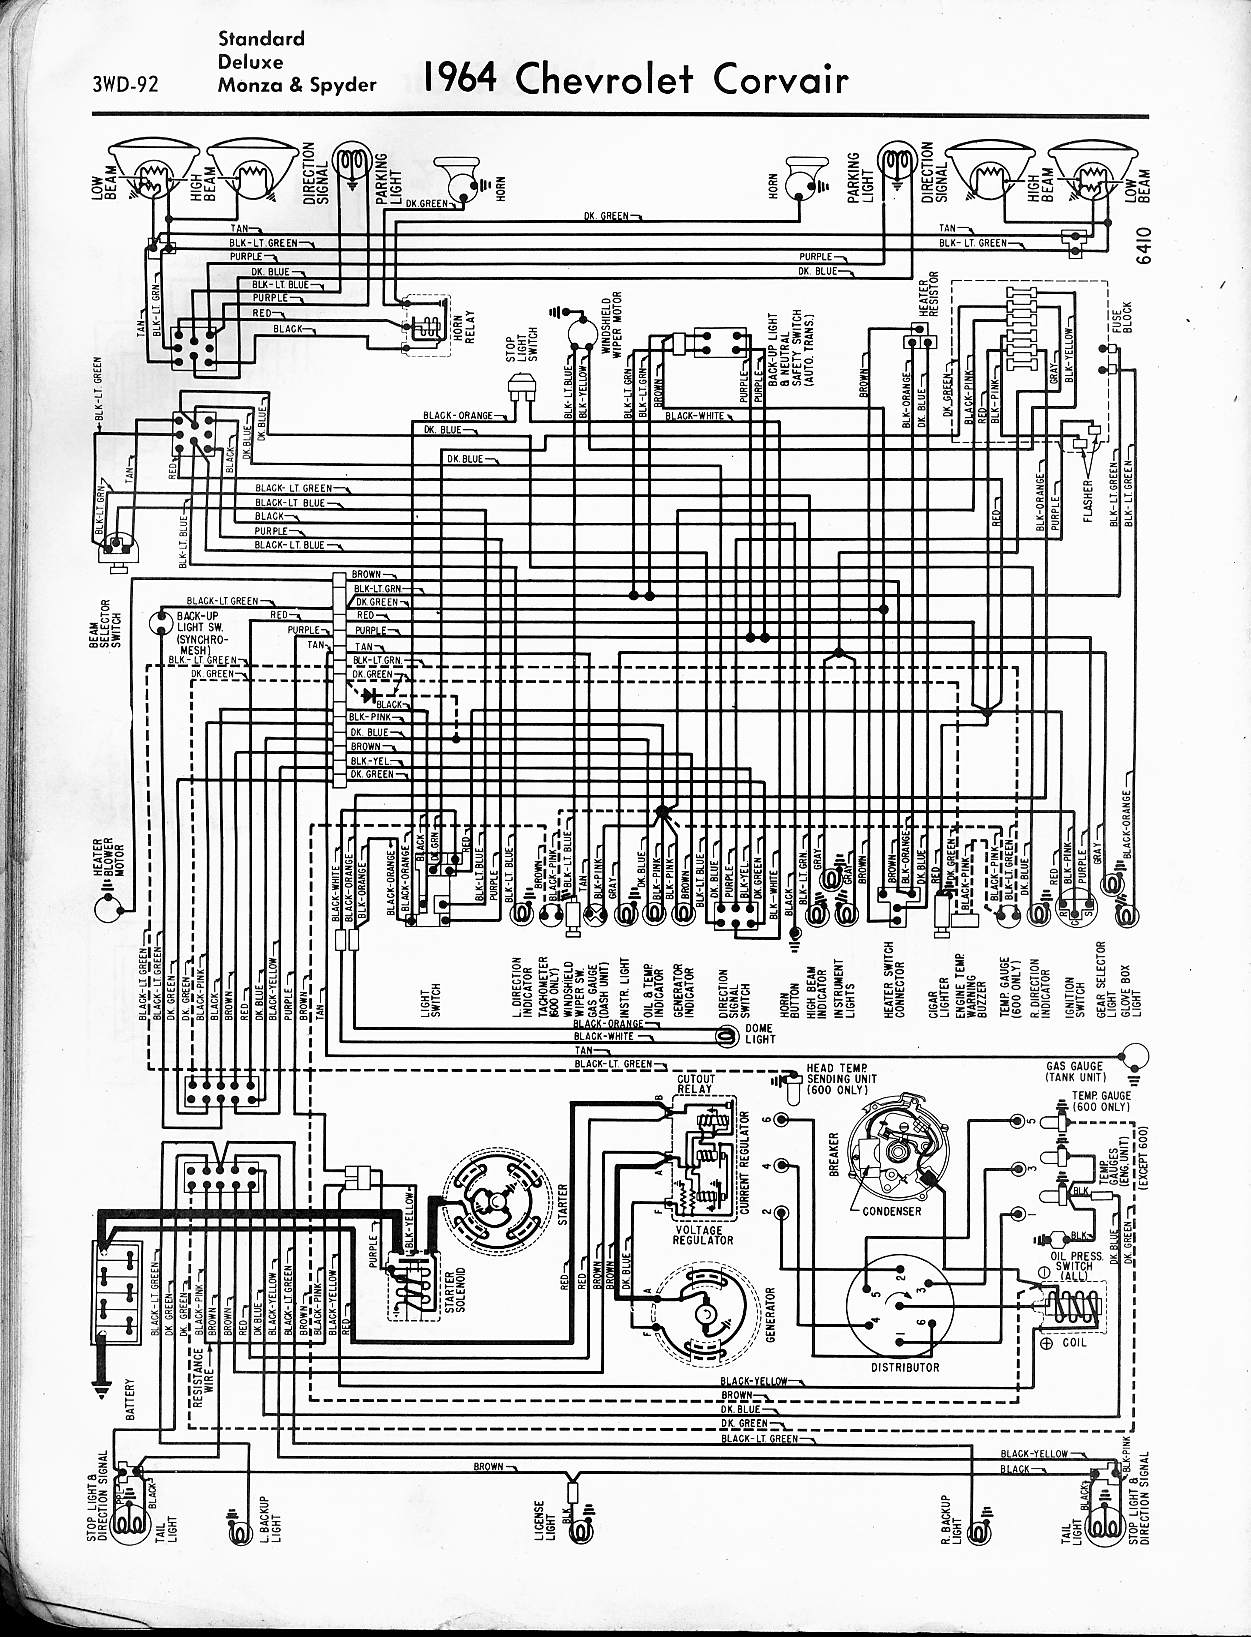 Remarkable 1964 Chevelle Wiring Diagram Wiring Diagram Database Wiring Cloud Staixaidewilluminateatxorg